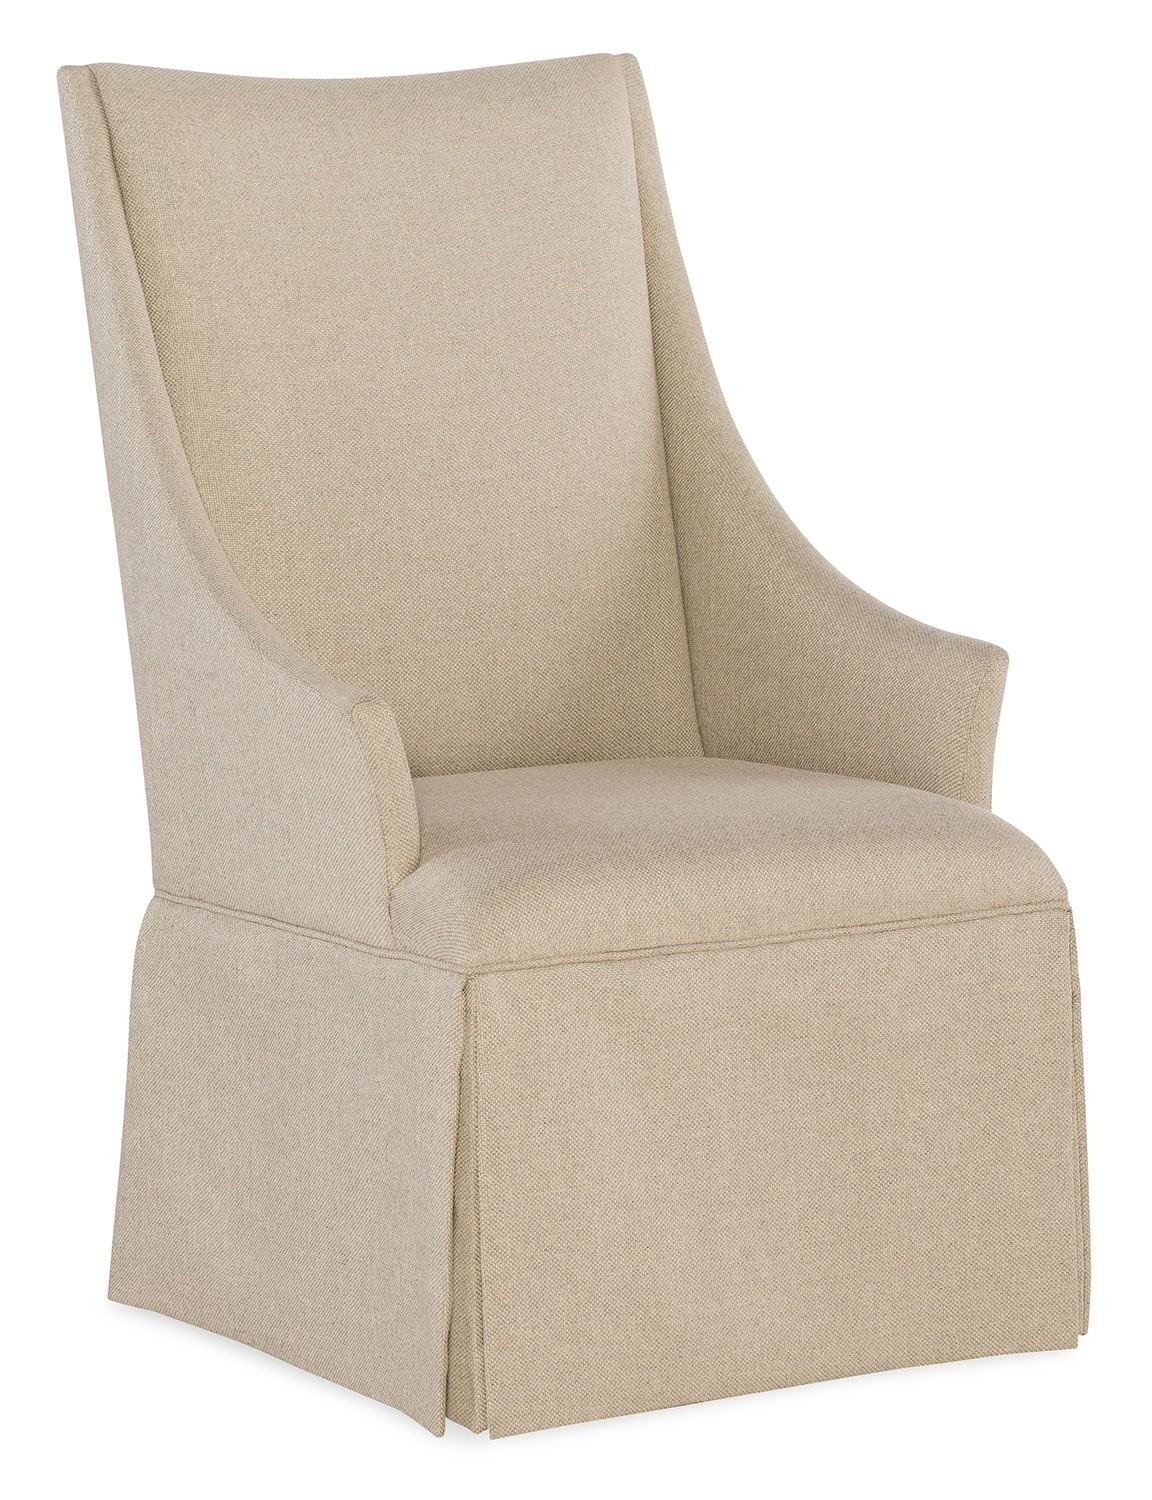 Dining Room Furniture - Rachael Ray Soho Host Chair - Sandstone